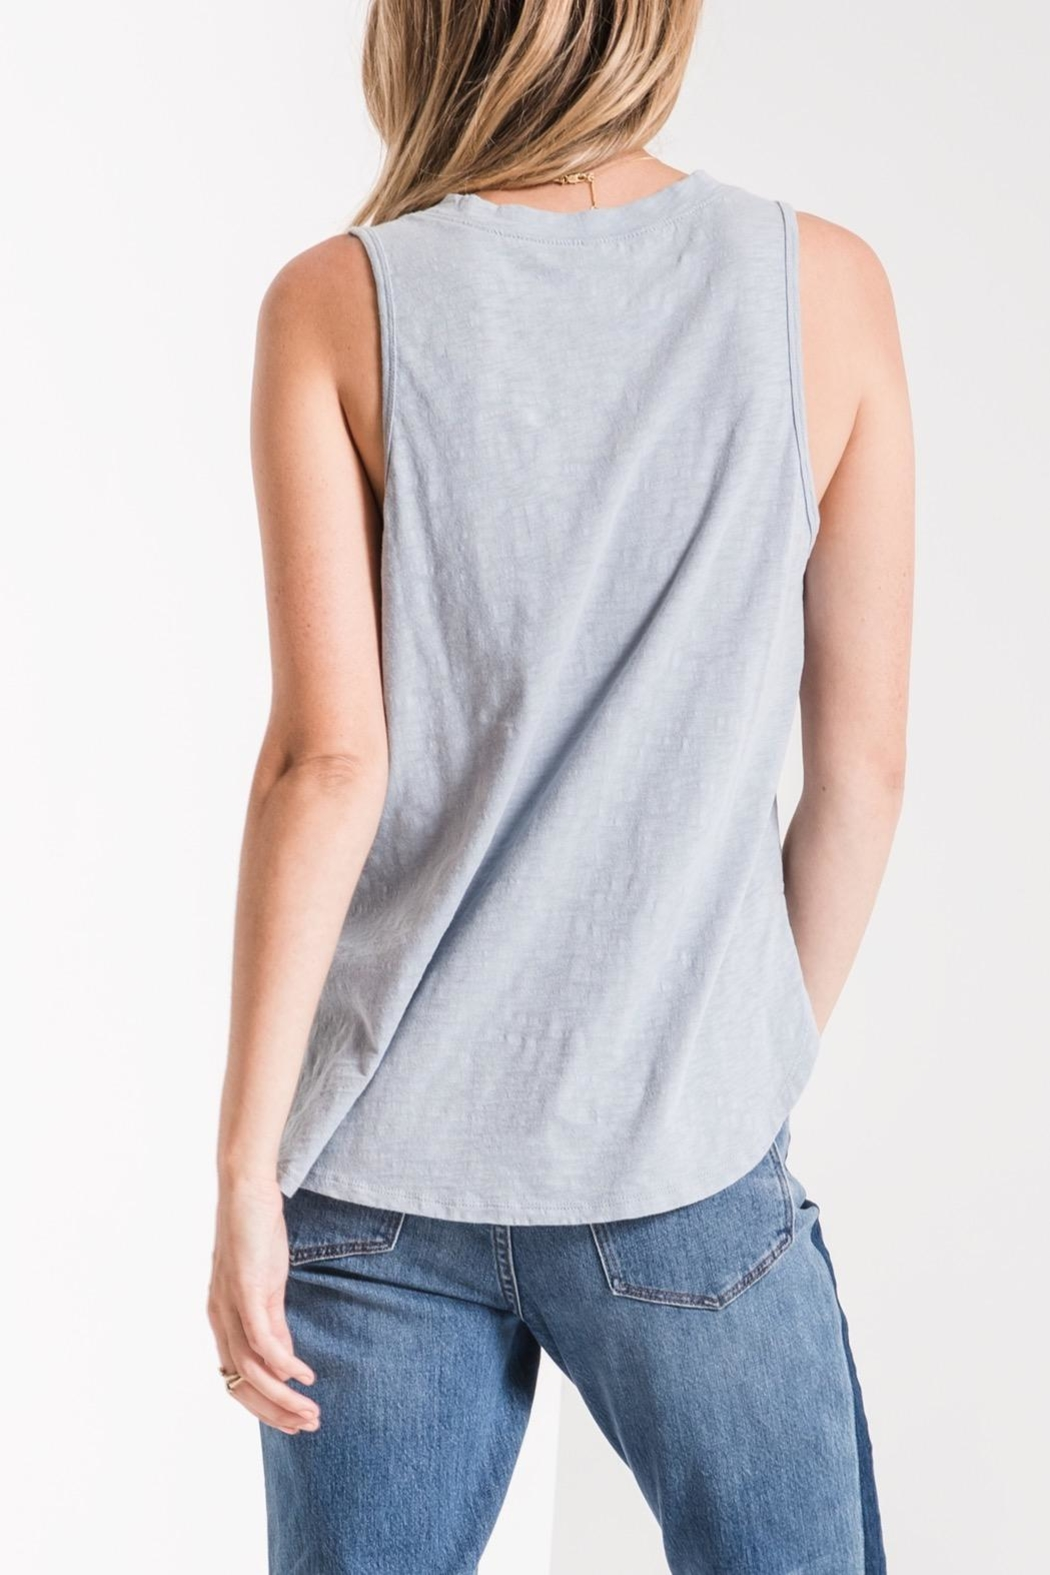 z supply Slub Shift Tank - Side Cropped Image